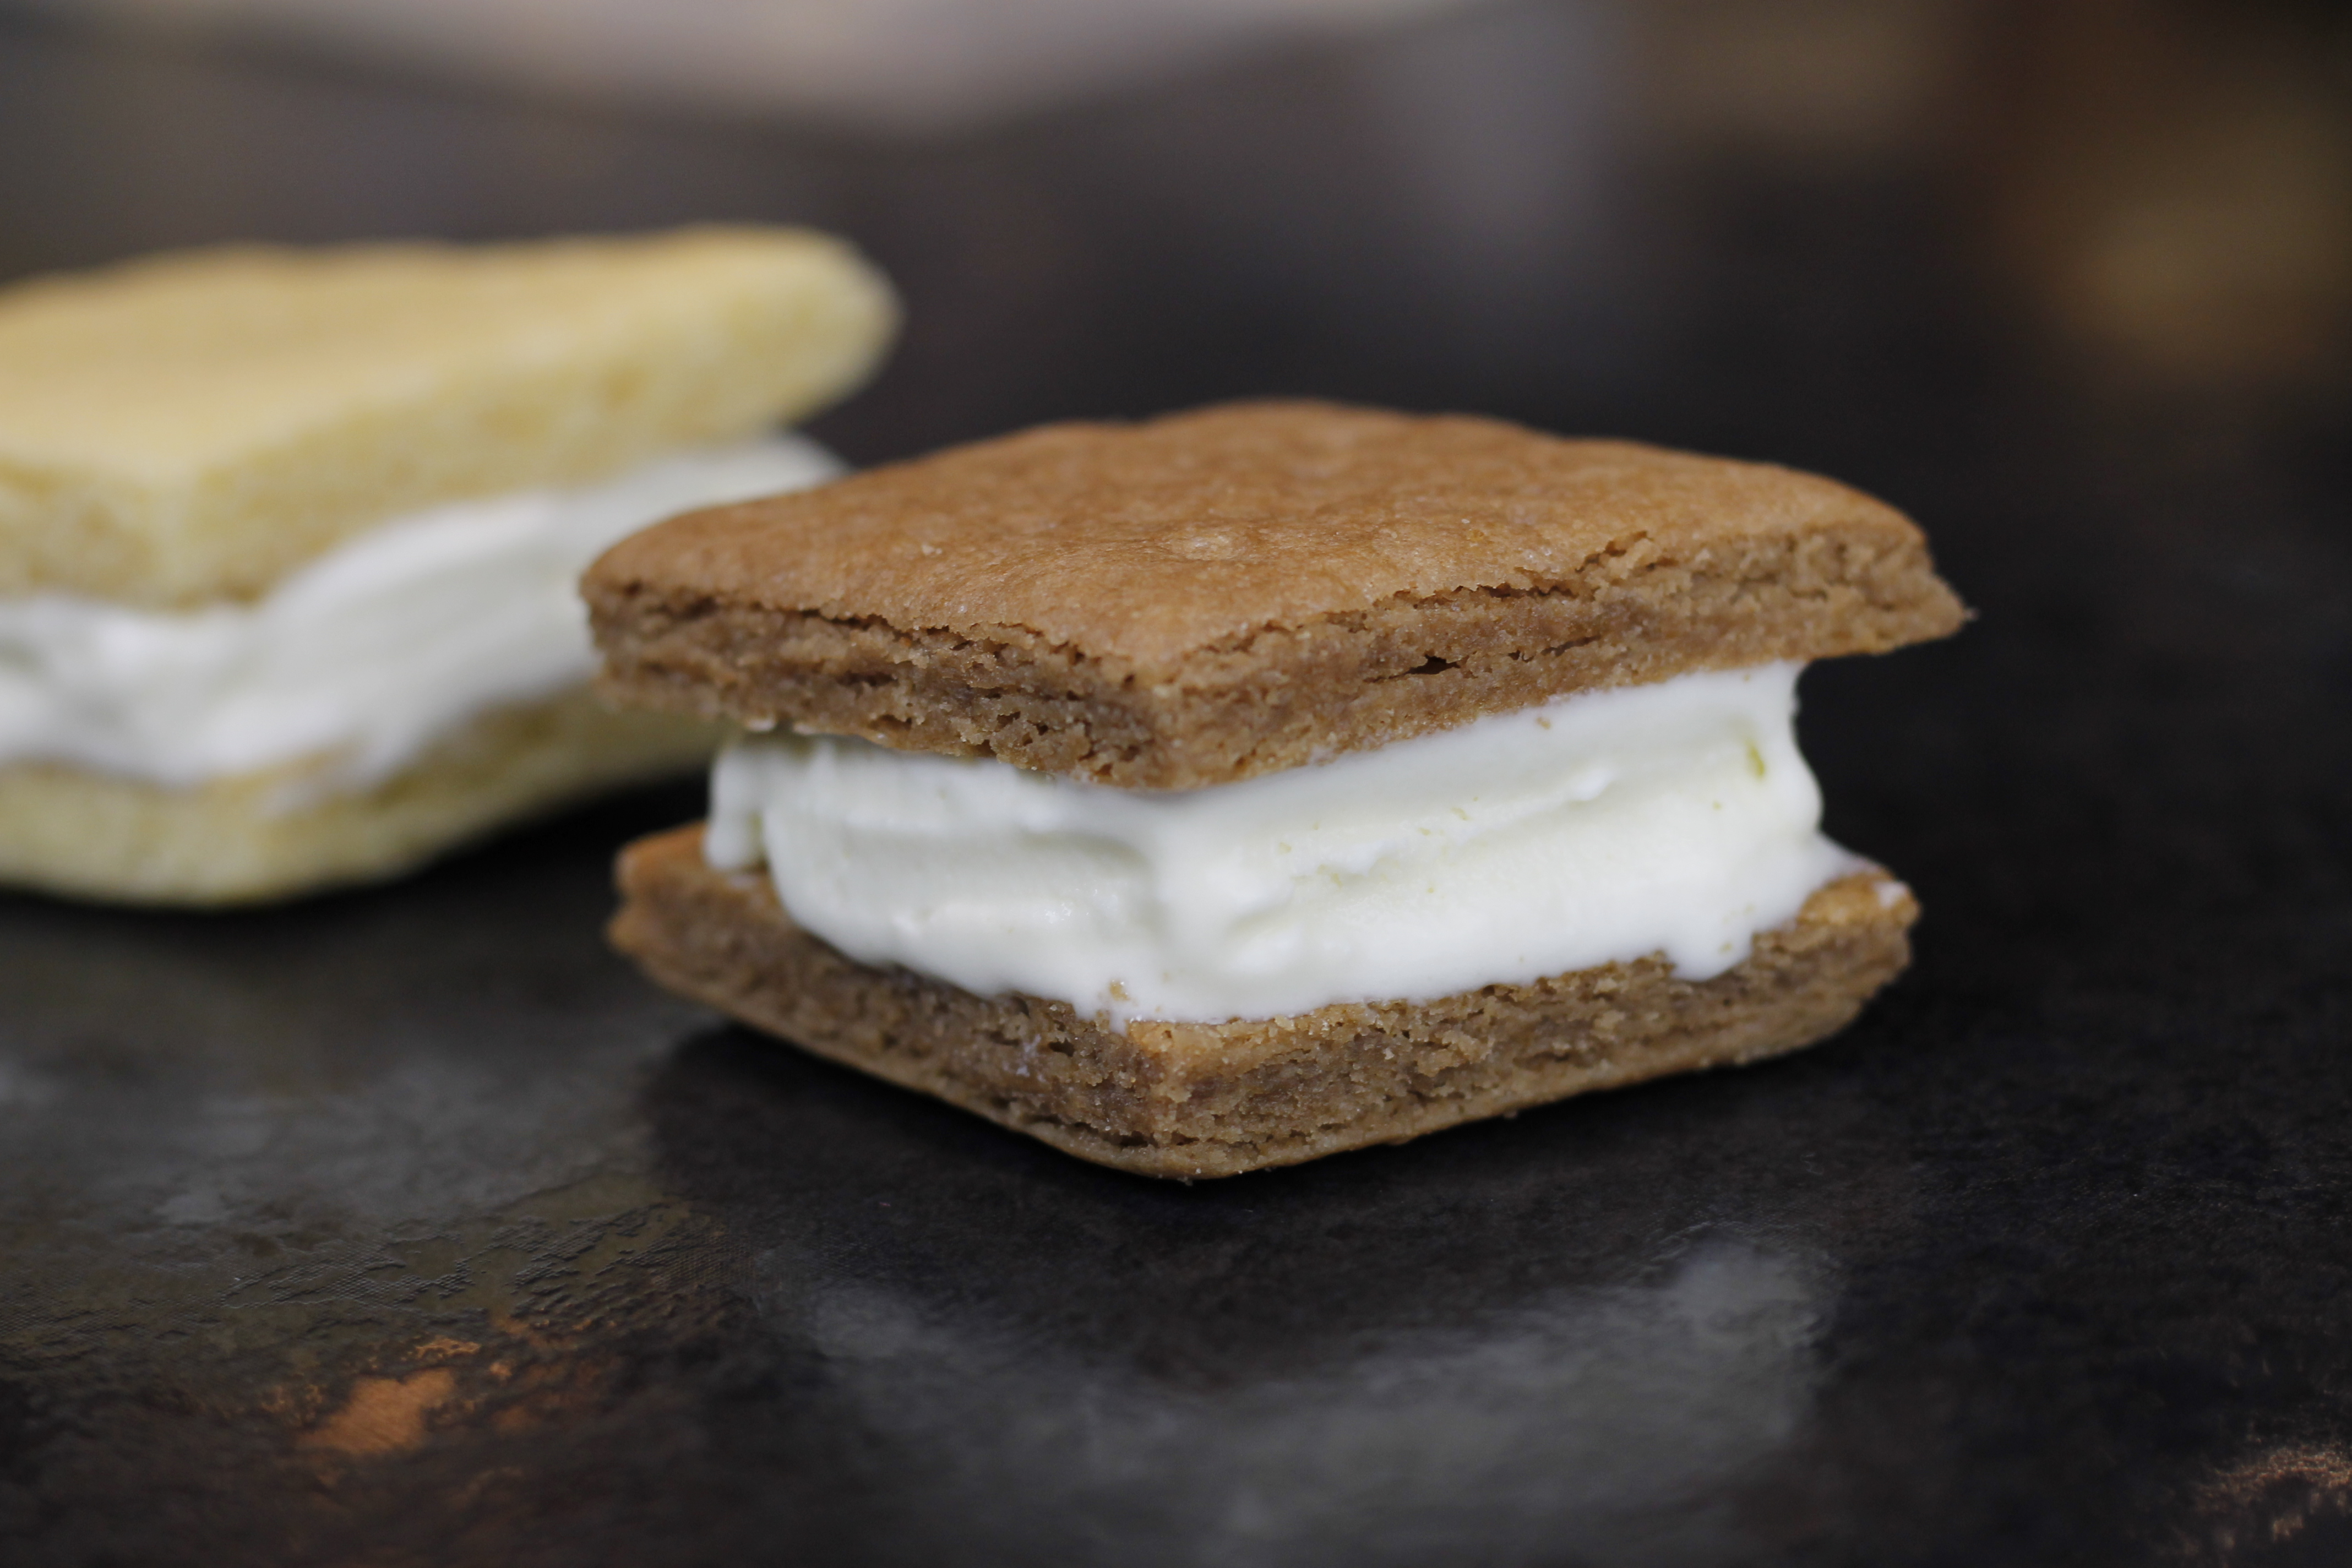 Picture of Chocolate Ice-Cream Sandwich's